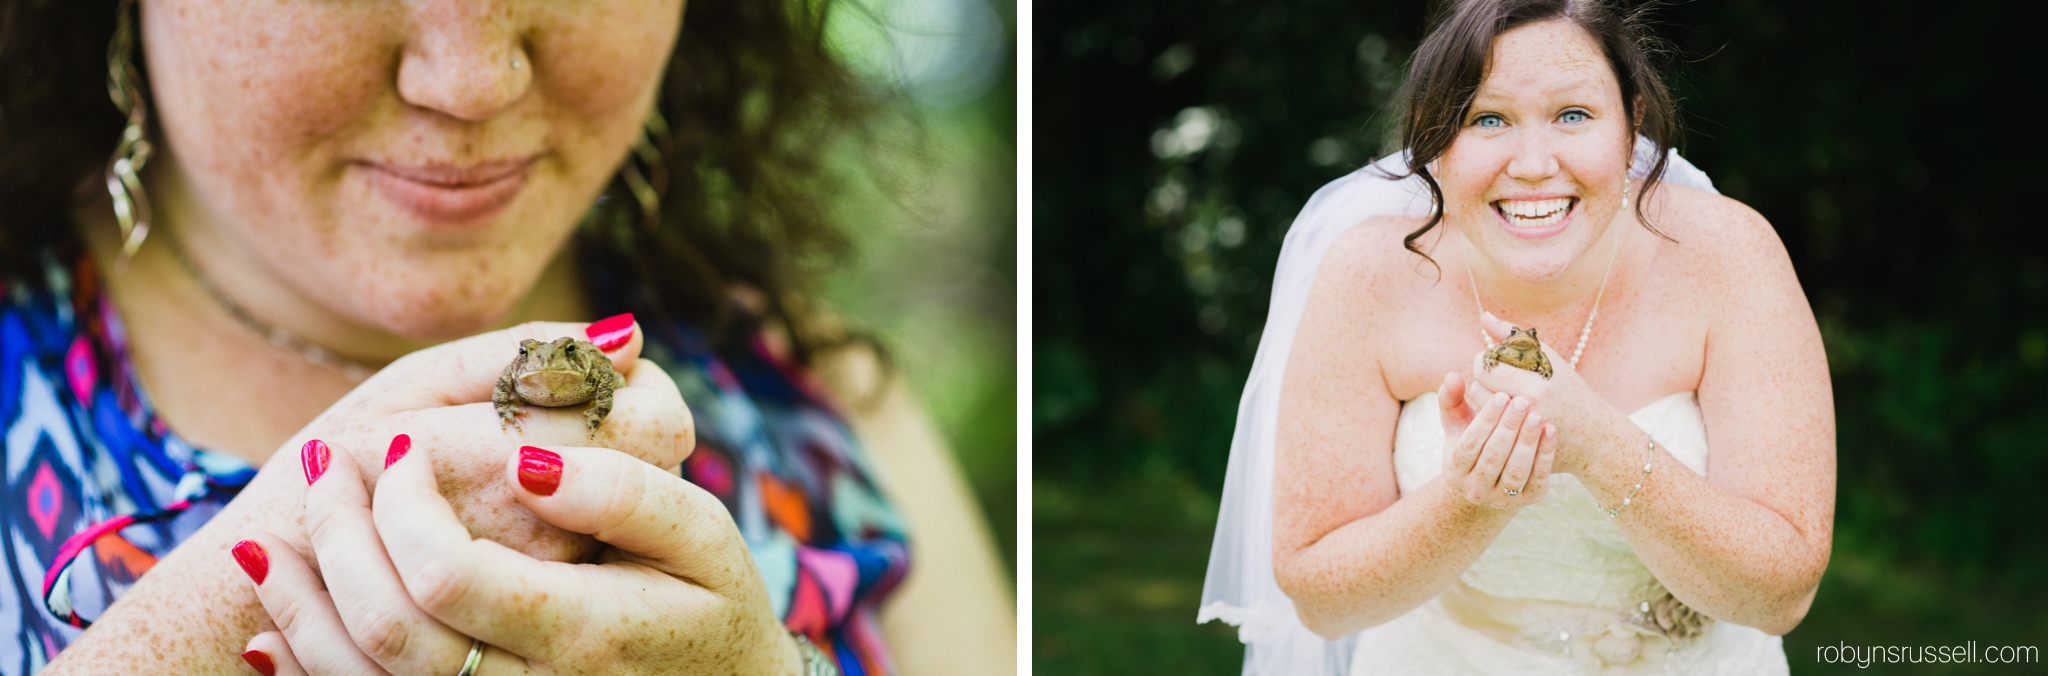 27-bride-and-the-frog-from-engagement-session-and-wedding.jpg